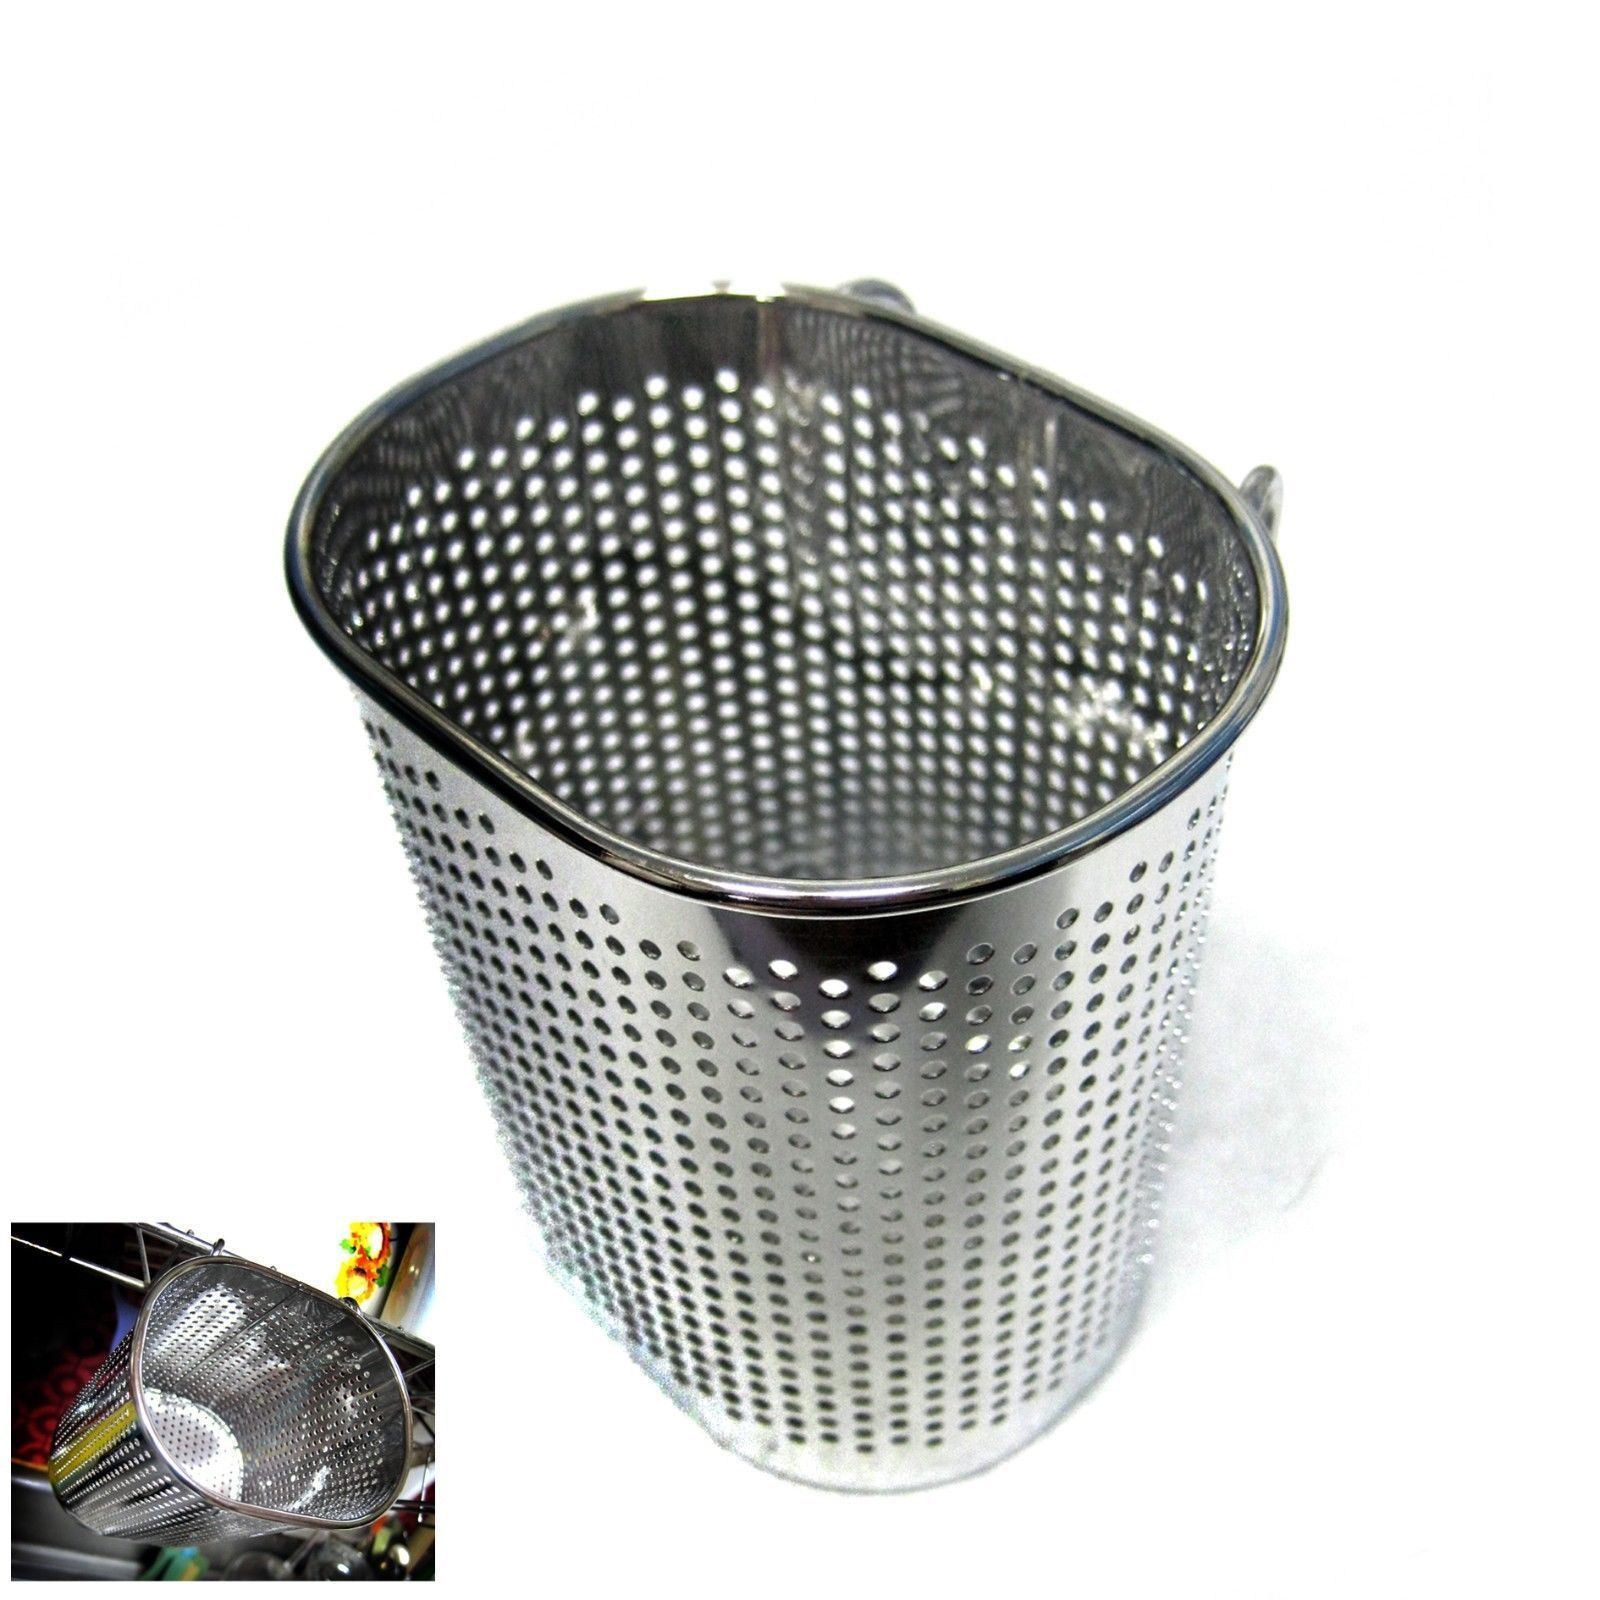 New Stainless Steel Perforated Cutlery Storage Hook